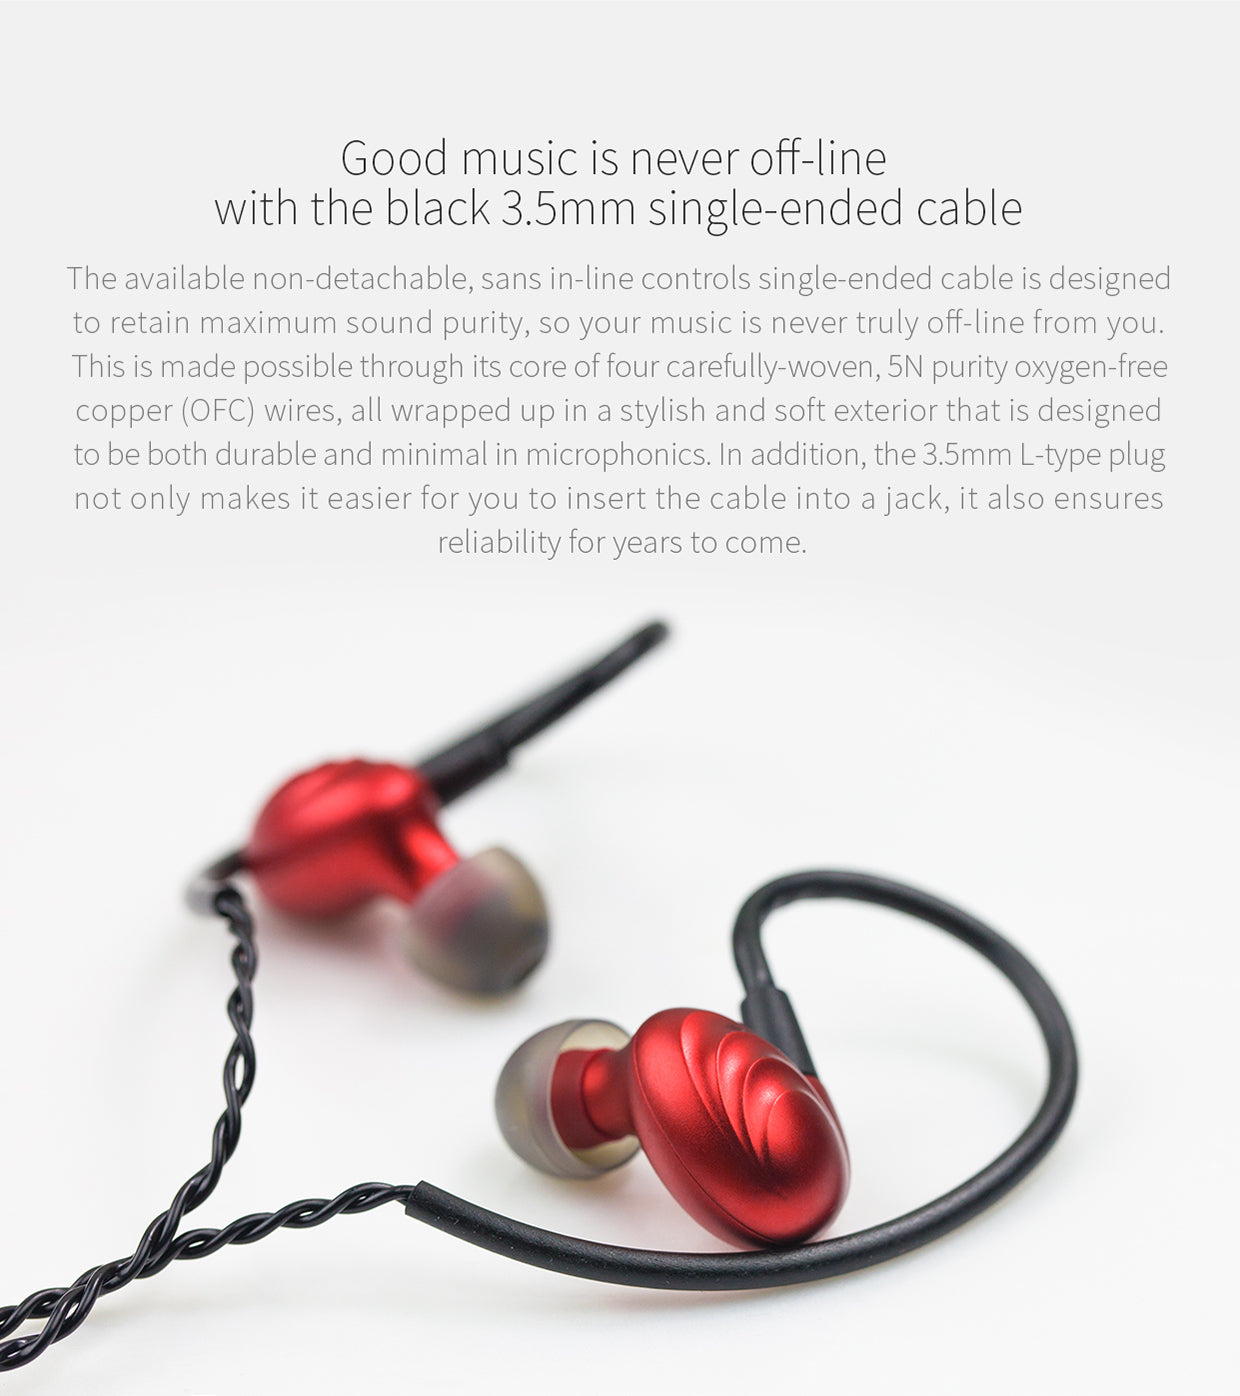 fiio-f9-se-in-ear-monitors